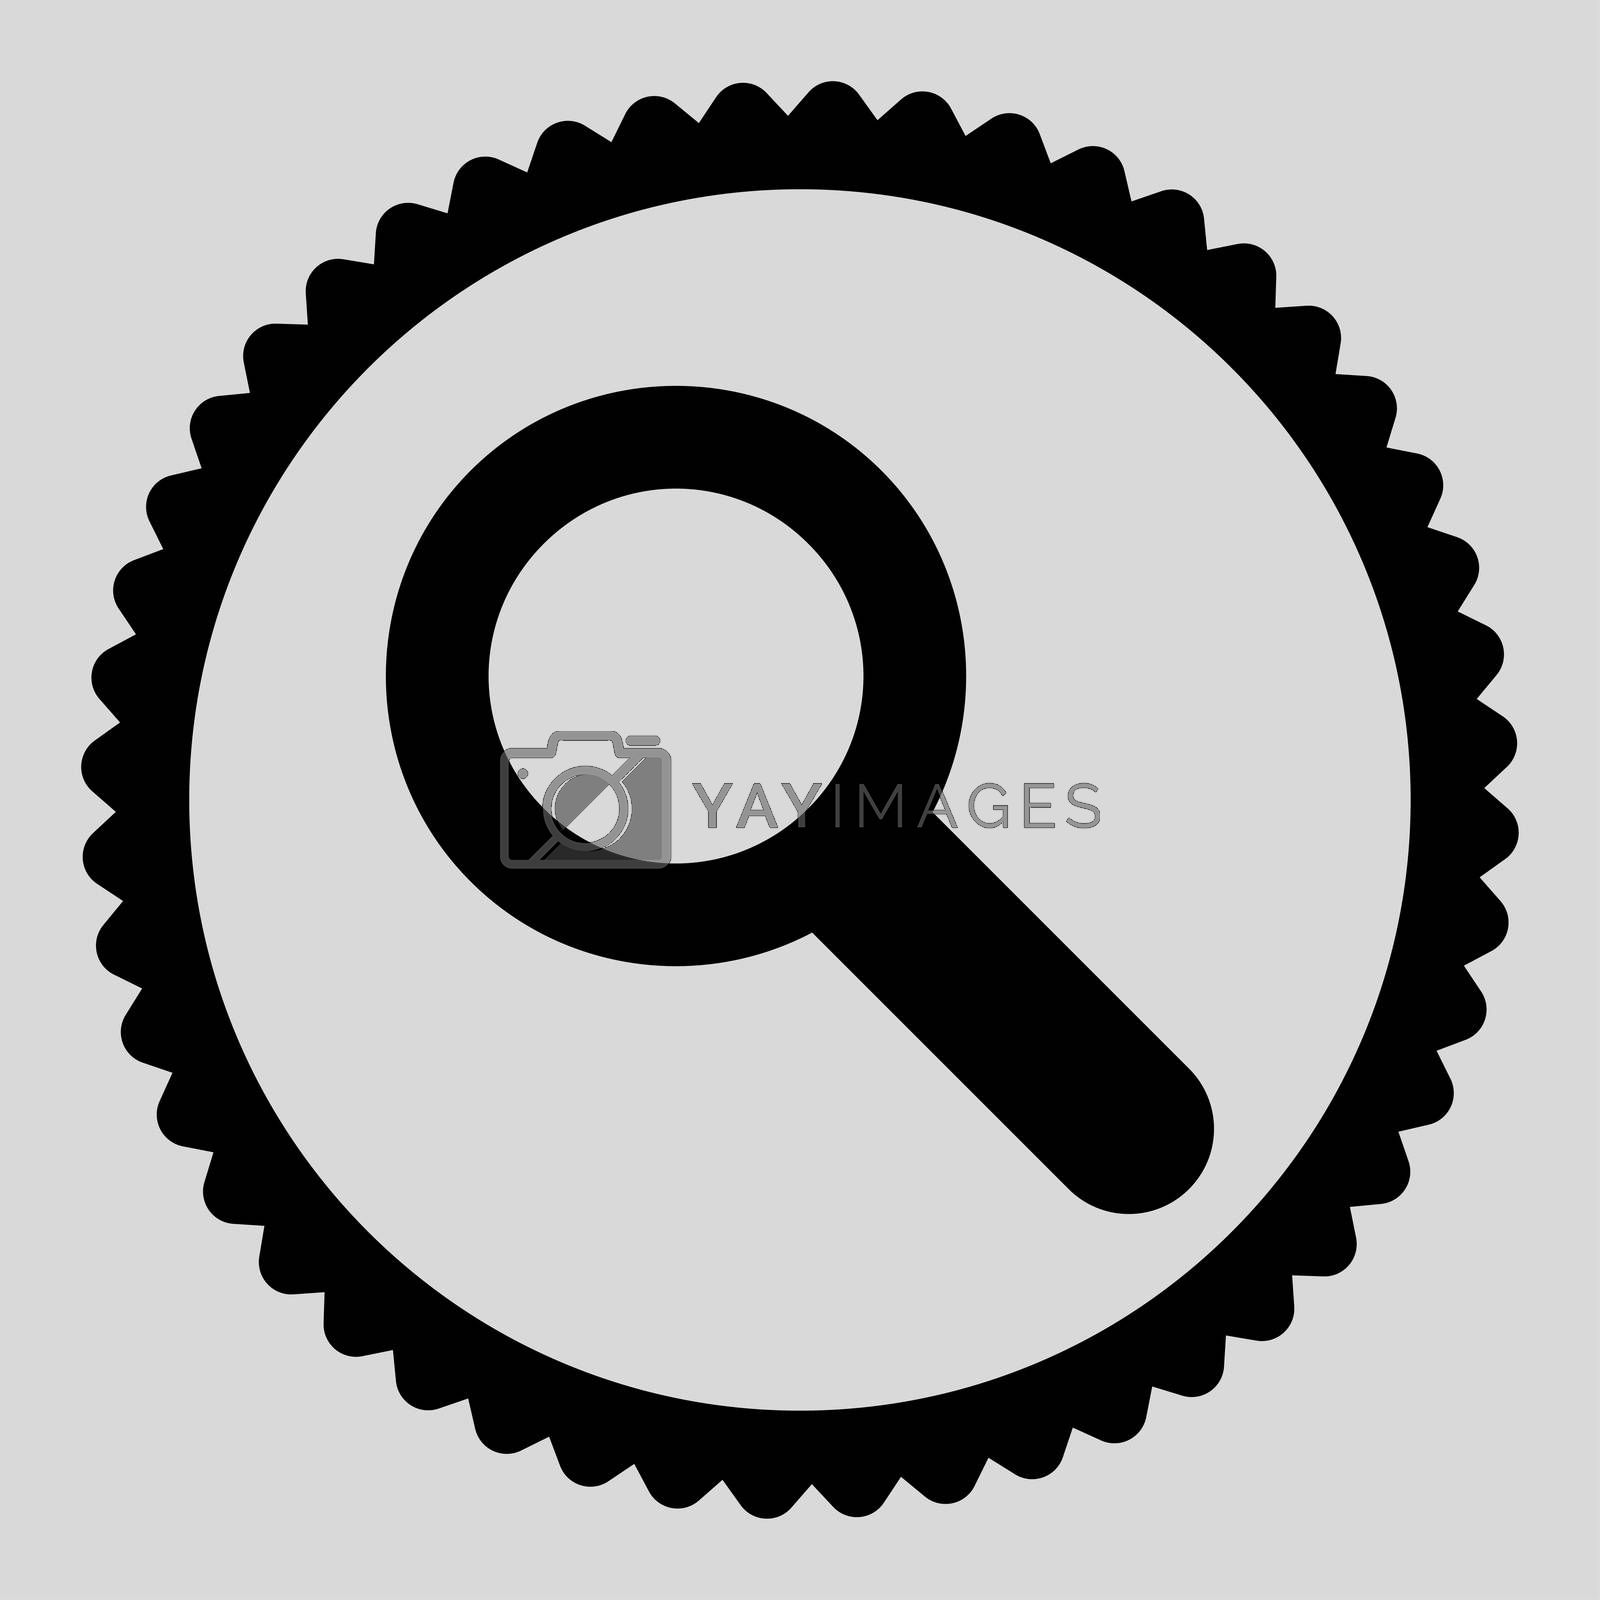 Search flat black color round stamp icon by Aha-Soft